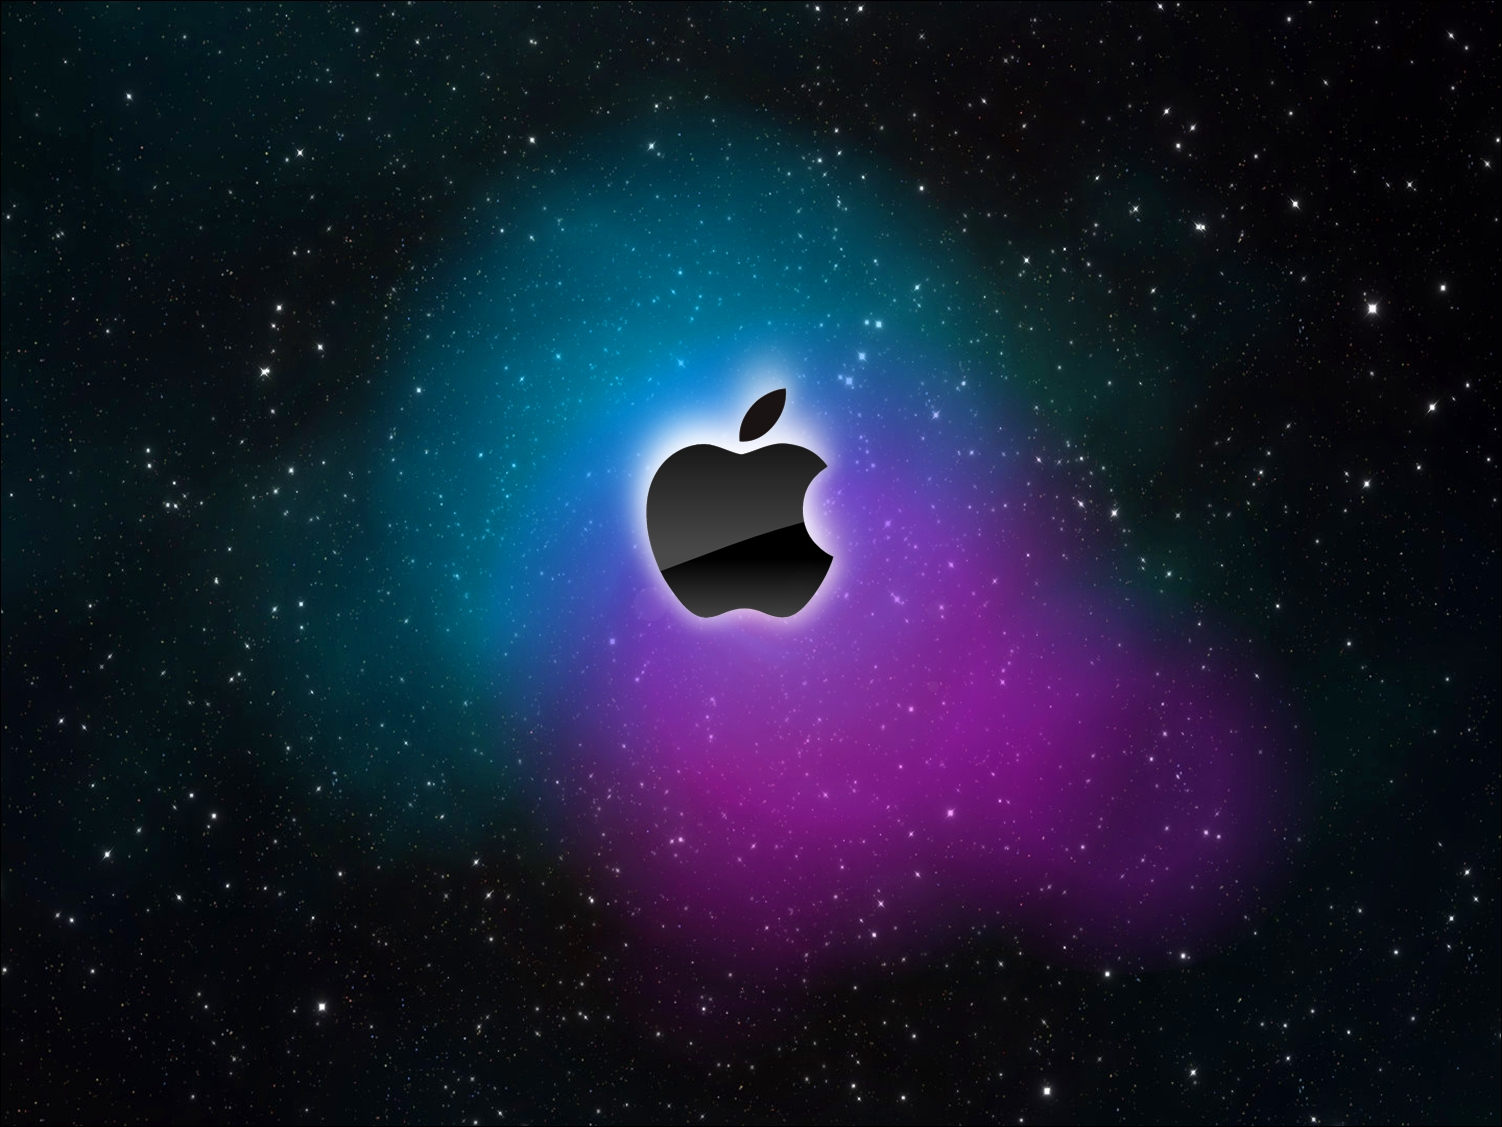 Apple Background Images Wallpaper